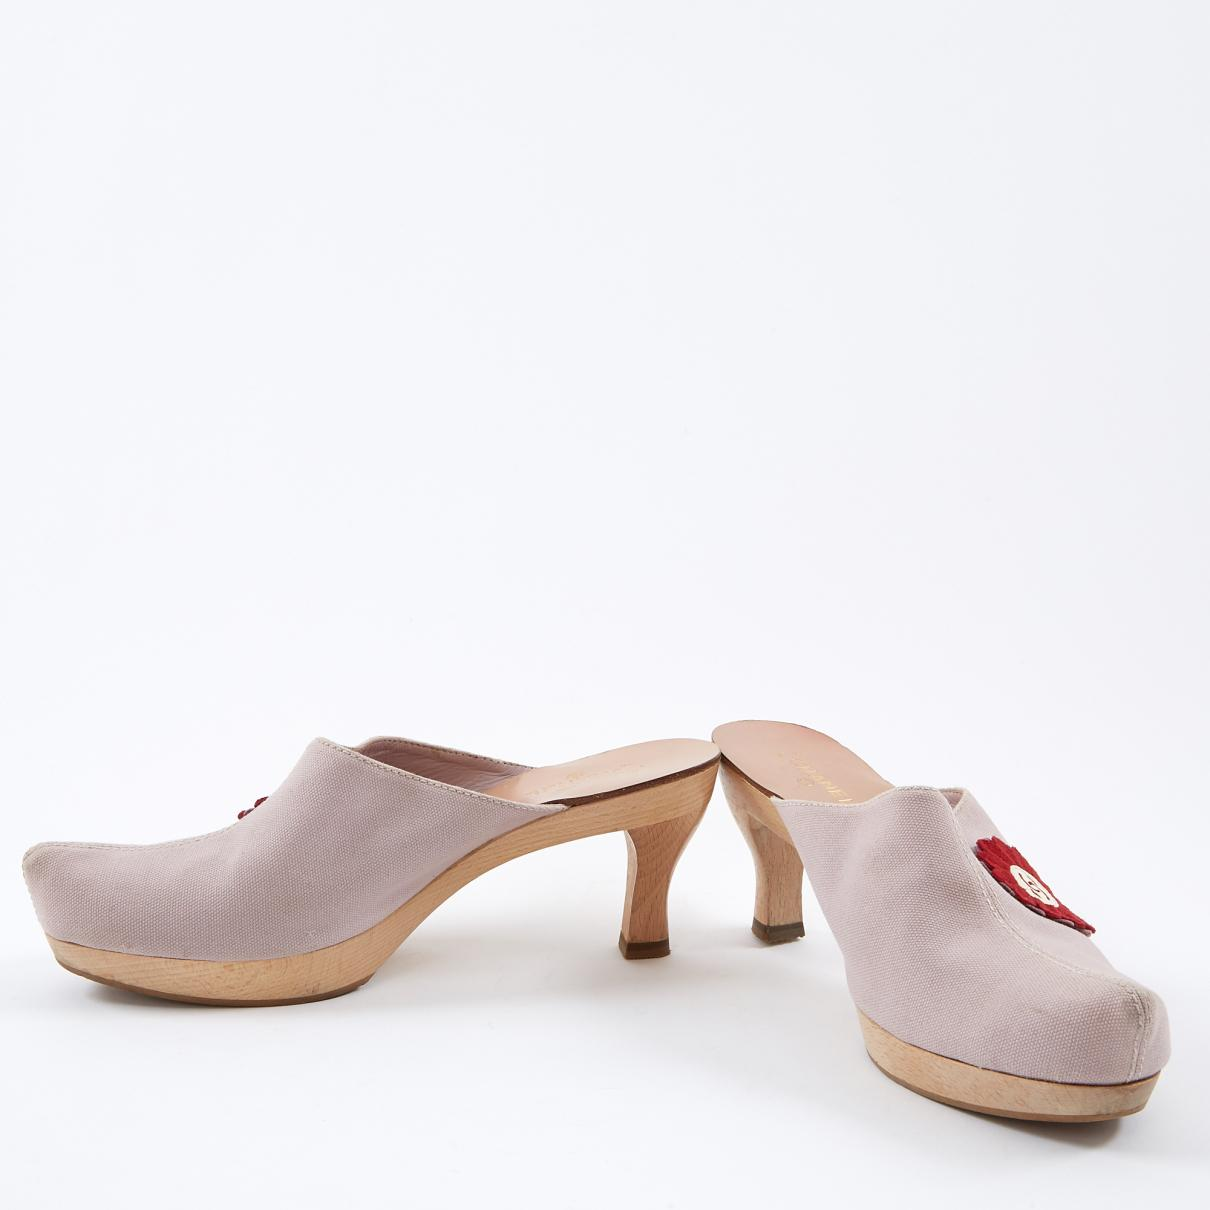 4ace3131b53 Chanel Pink Cloth Mules   Clogs in Pink - Lyst